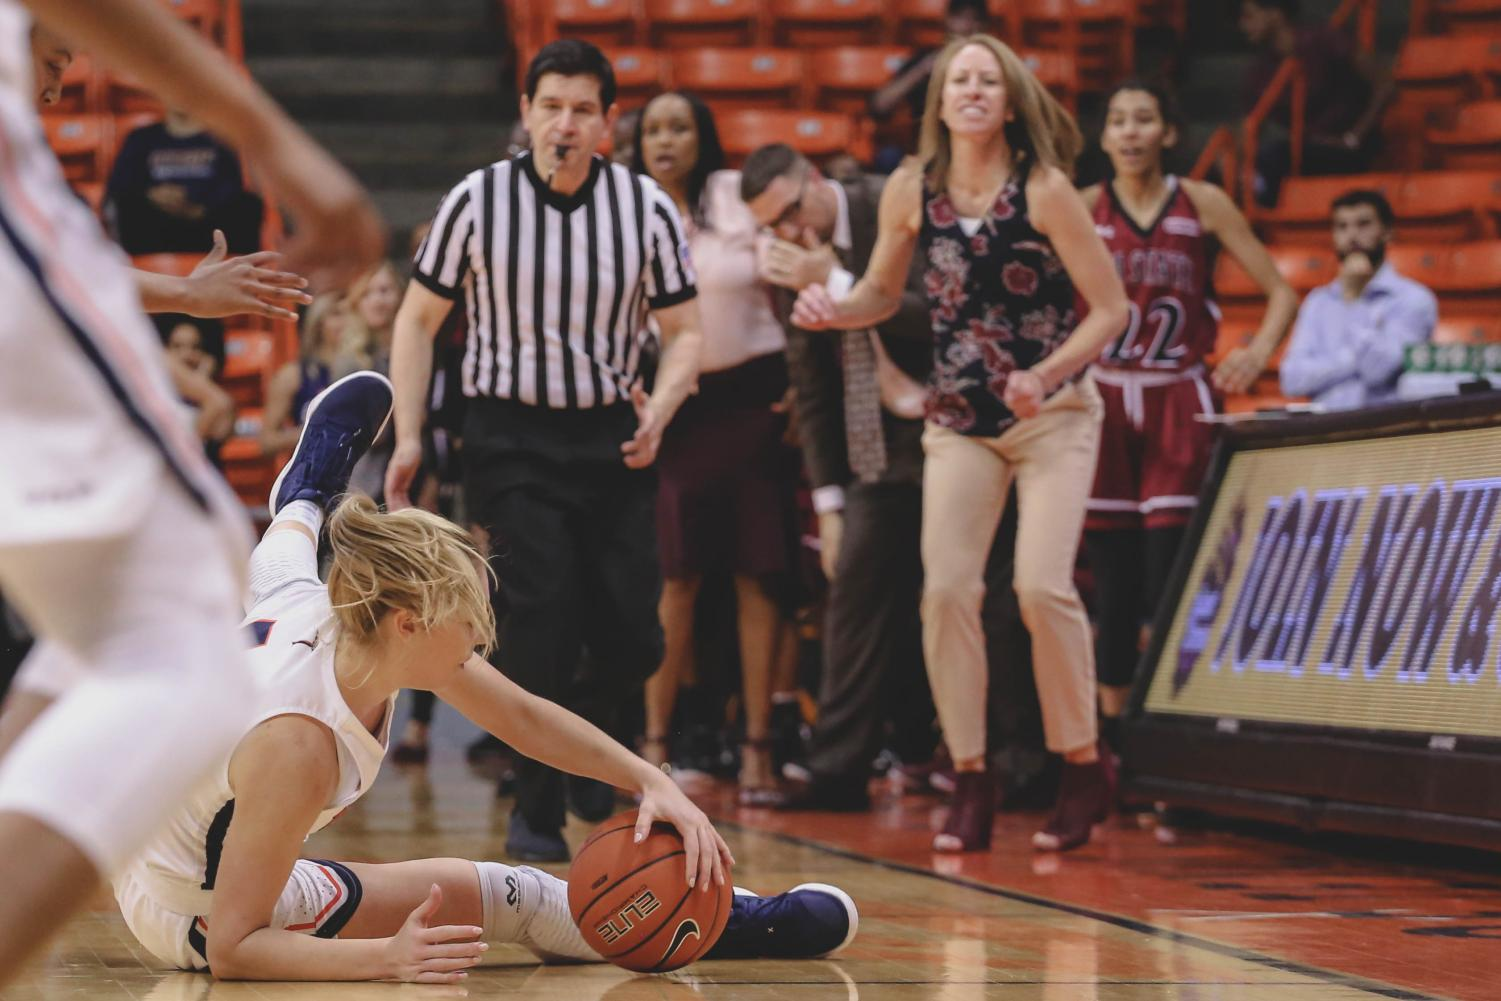 the+Aggies+celebrate+as+junior+guard+Katarina+Zec+trips+as+they+win+the+battle+of+I-10.